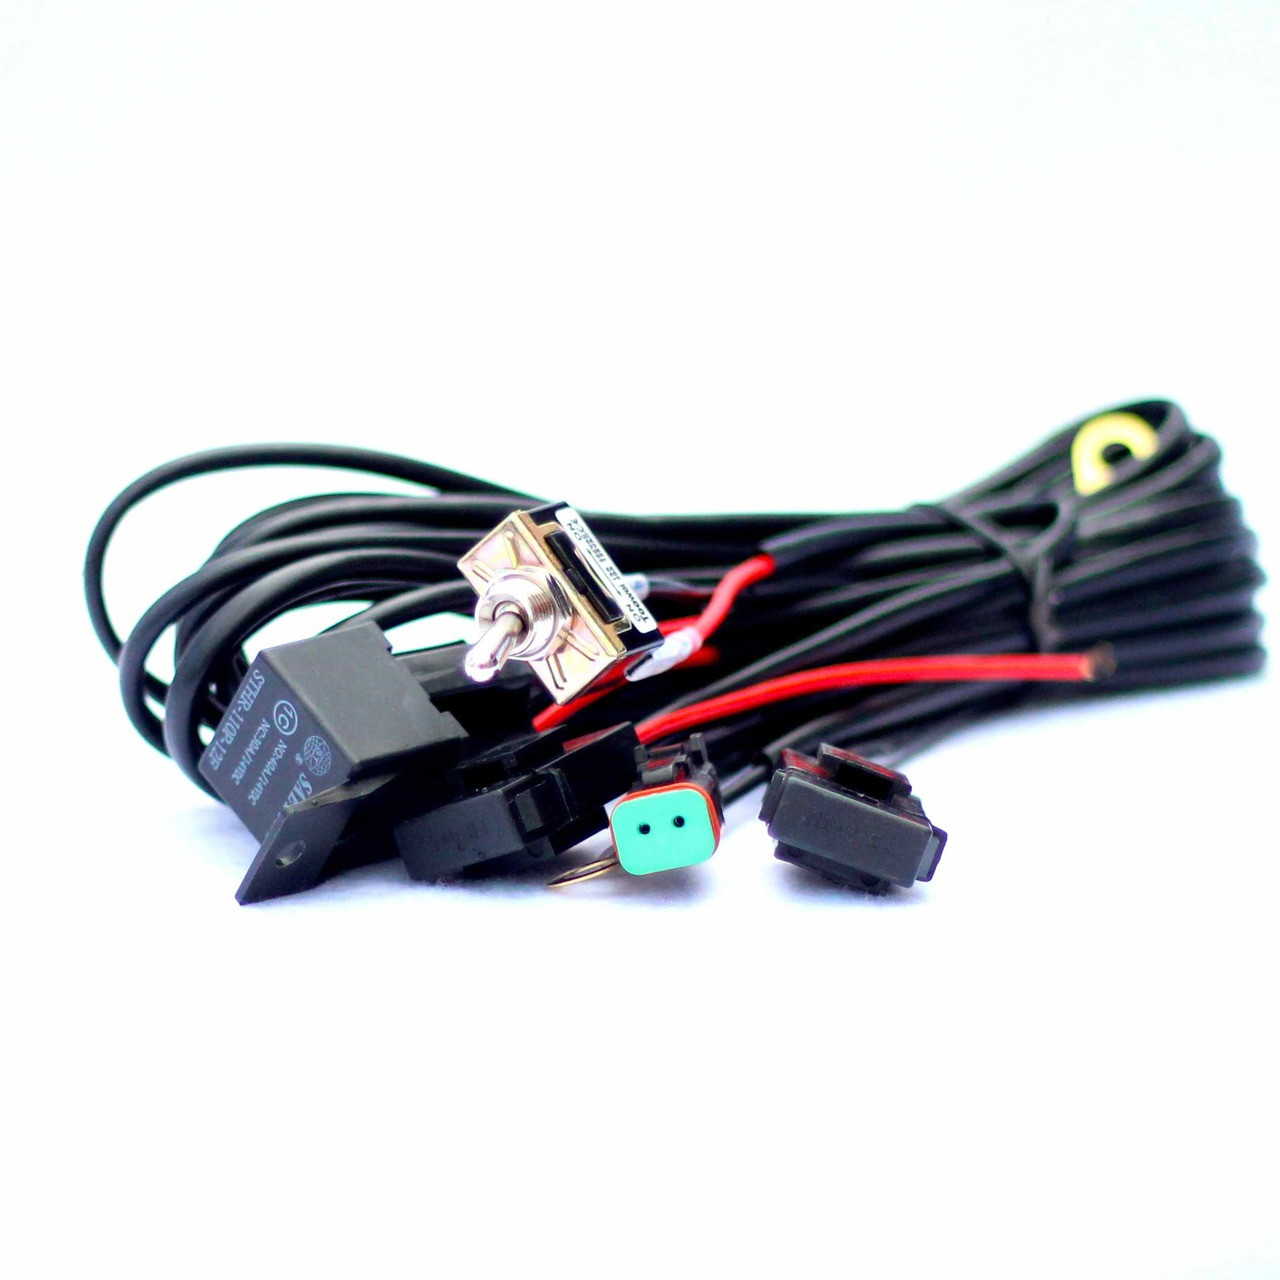 hight resolution of southern lite led wiring harness includes toggle switch water tight dt connecter and